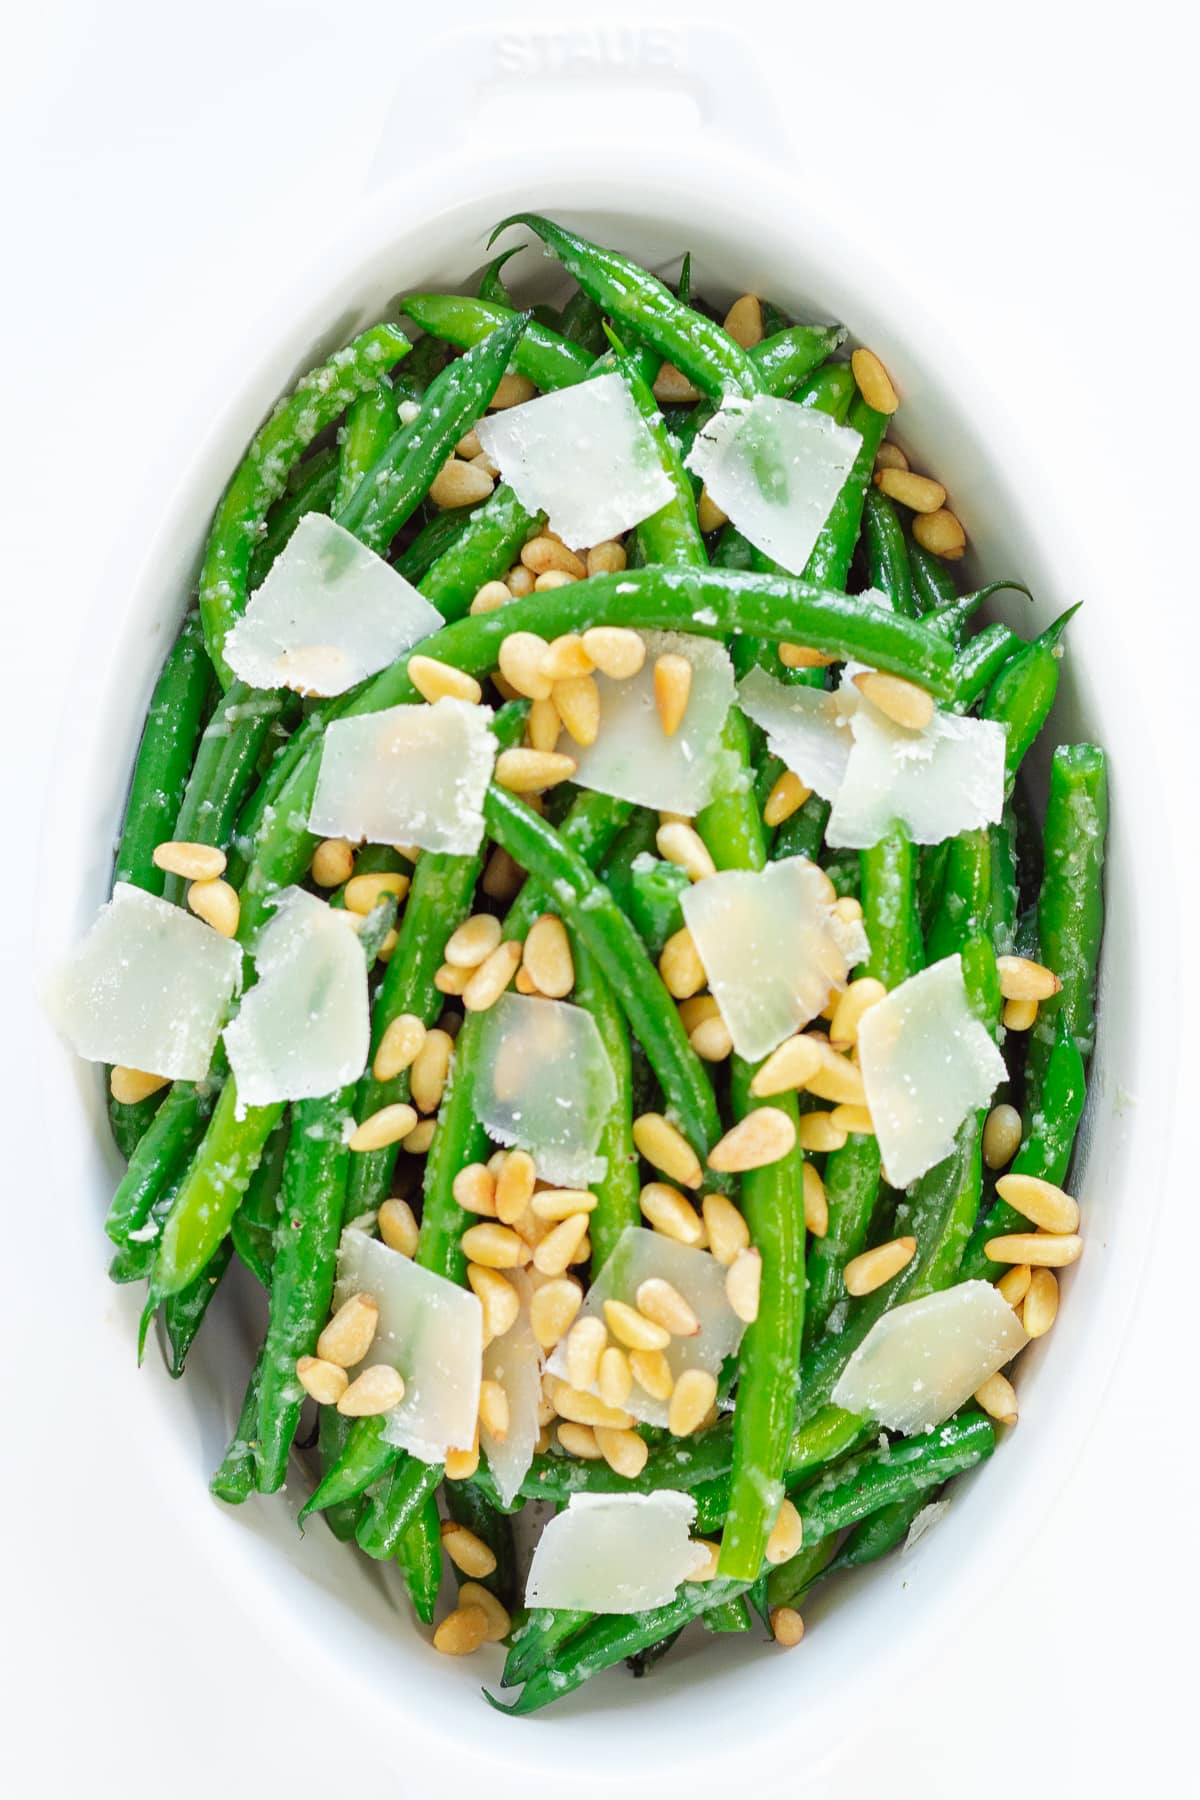 White serving dish containing garlic green beans garnished with parmesan and pine nuts.